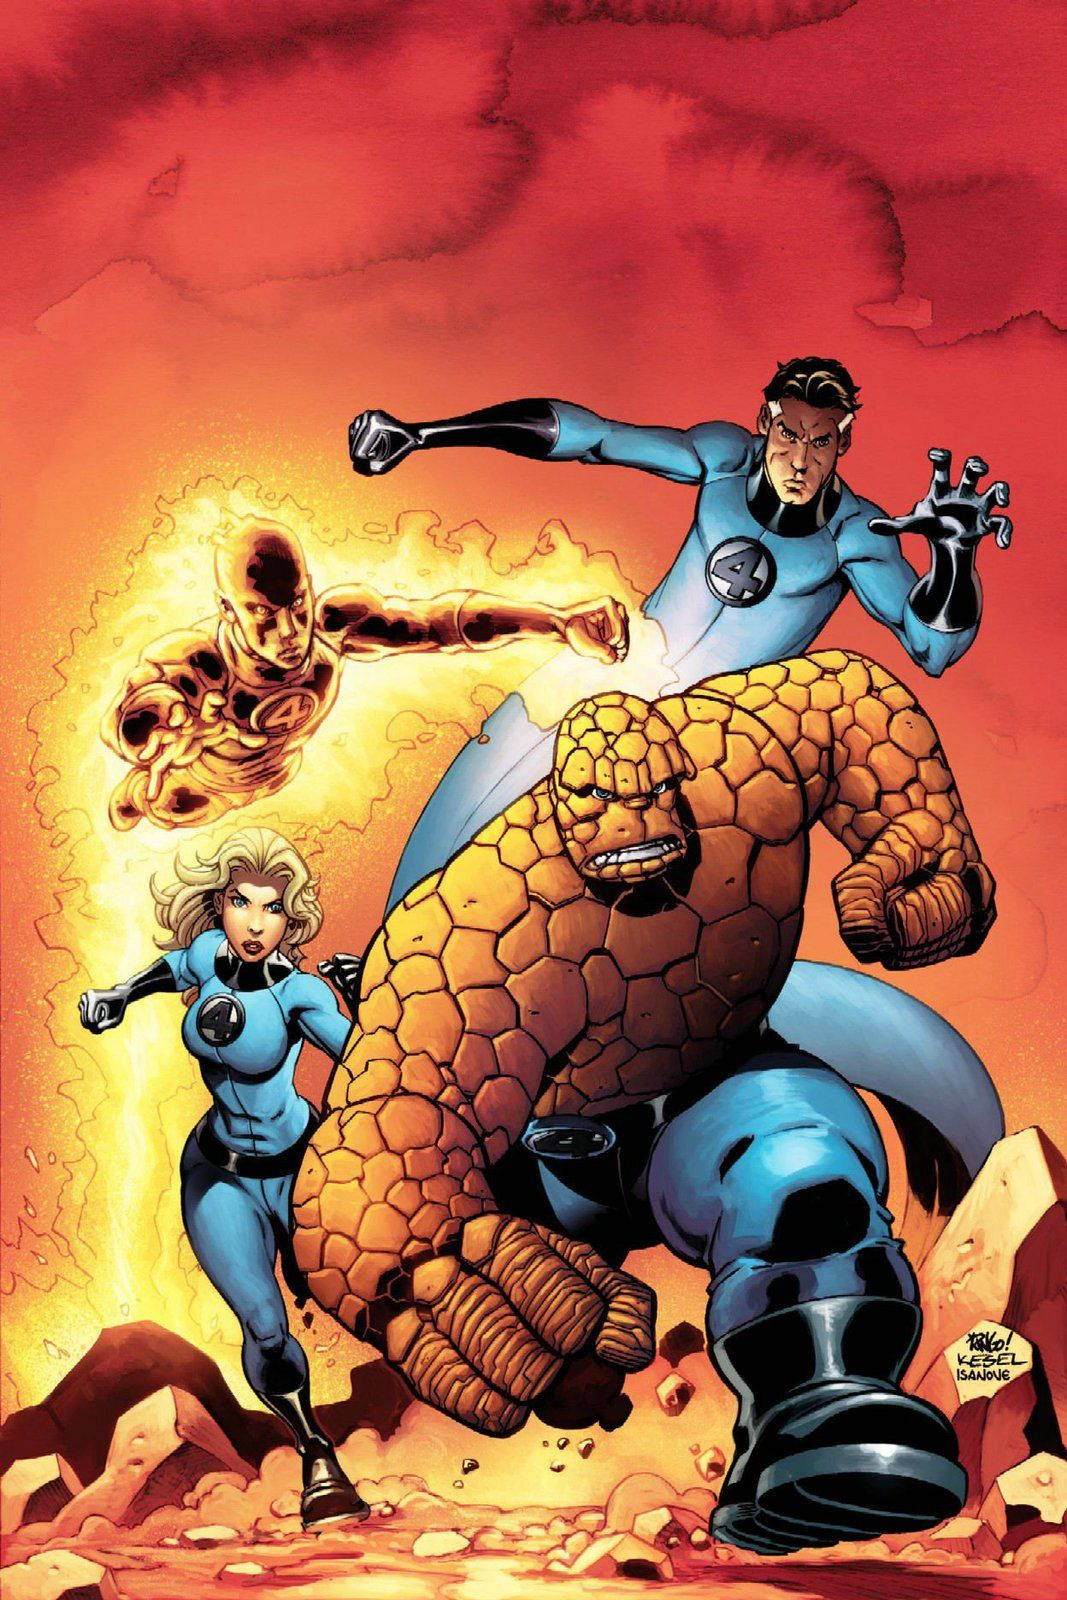 Les légendes de la Bande Dessinée par Oncle Fumetti… The Fantastic Four et Mike Wieringo